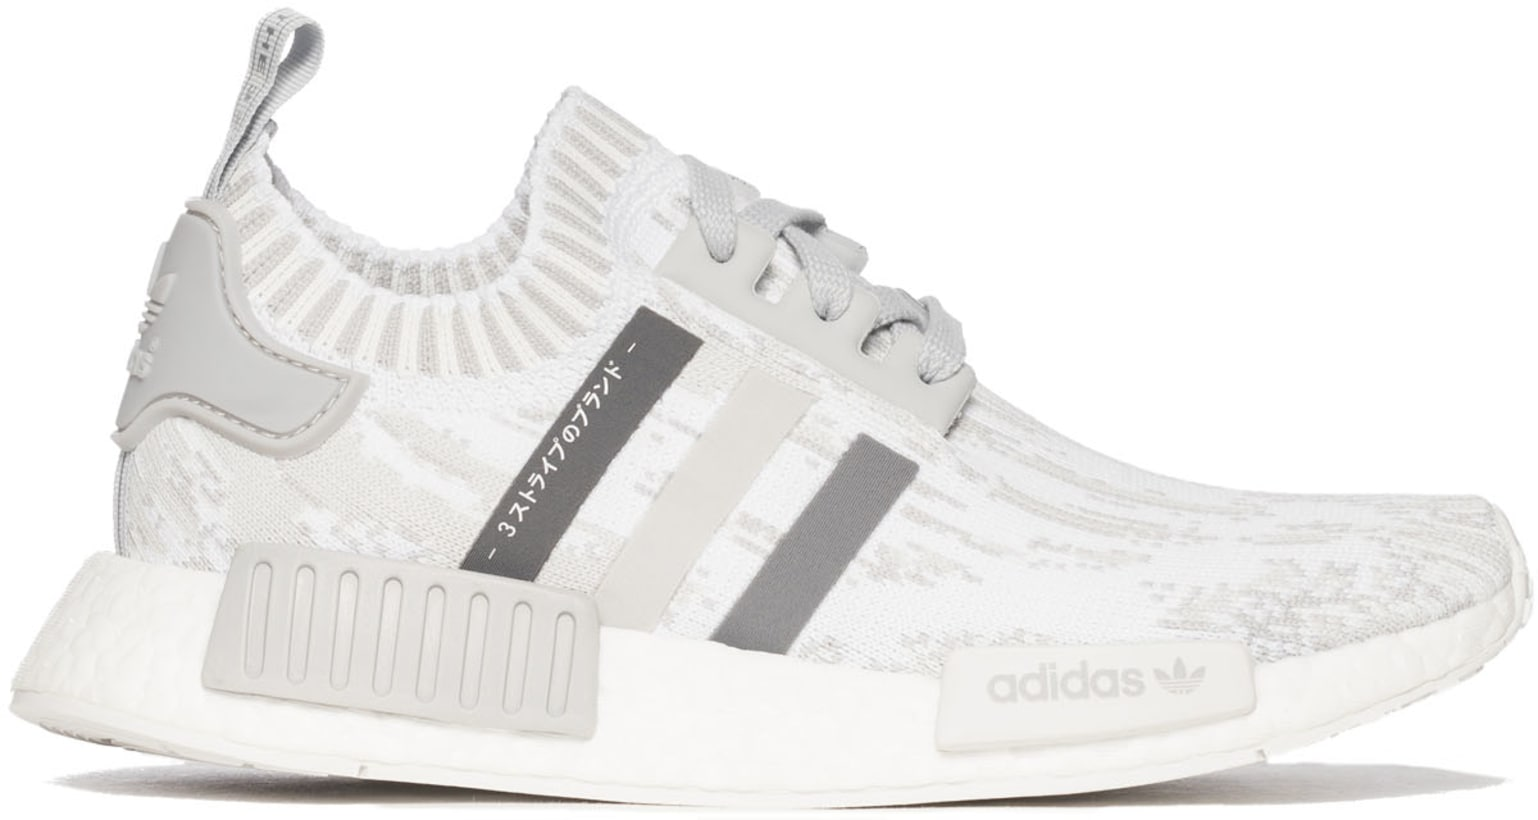 online store d1d43 b31b5 adidas Originals - NMD R1 Prime Knit - Grey Two/Grey Four /Grey Five